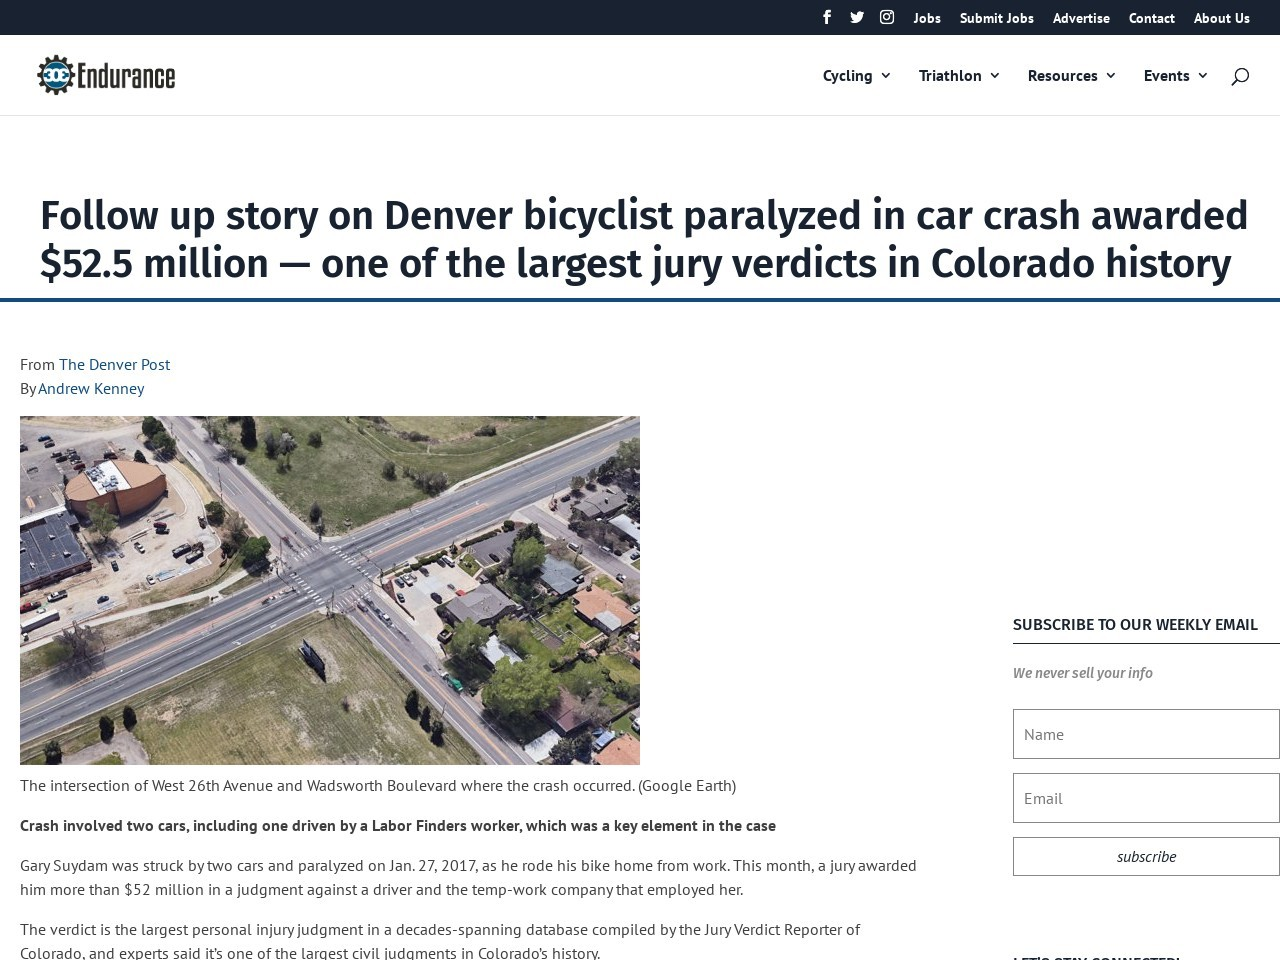 Follow up story on Denver bicyclist paralyzed in car crash awarded $52.5 million — one of the largest jury verdicts in Colorado history